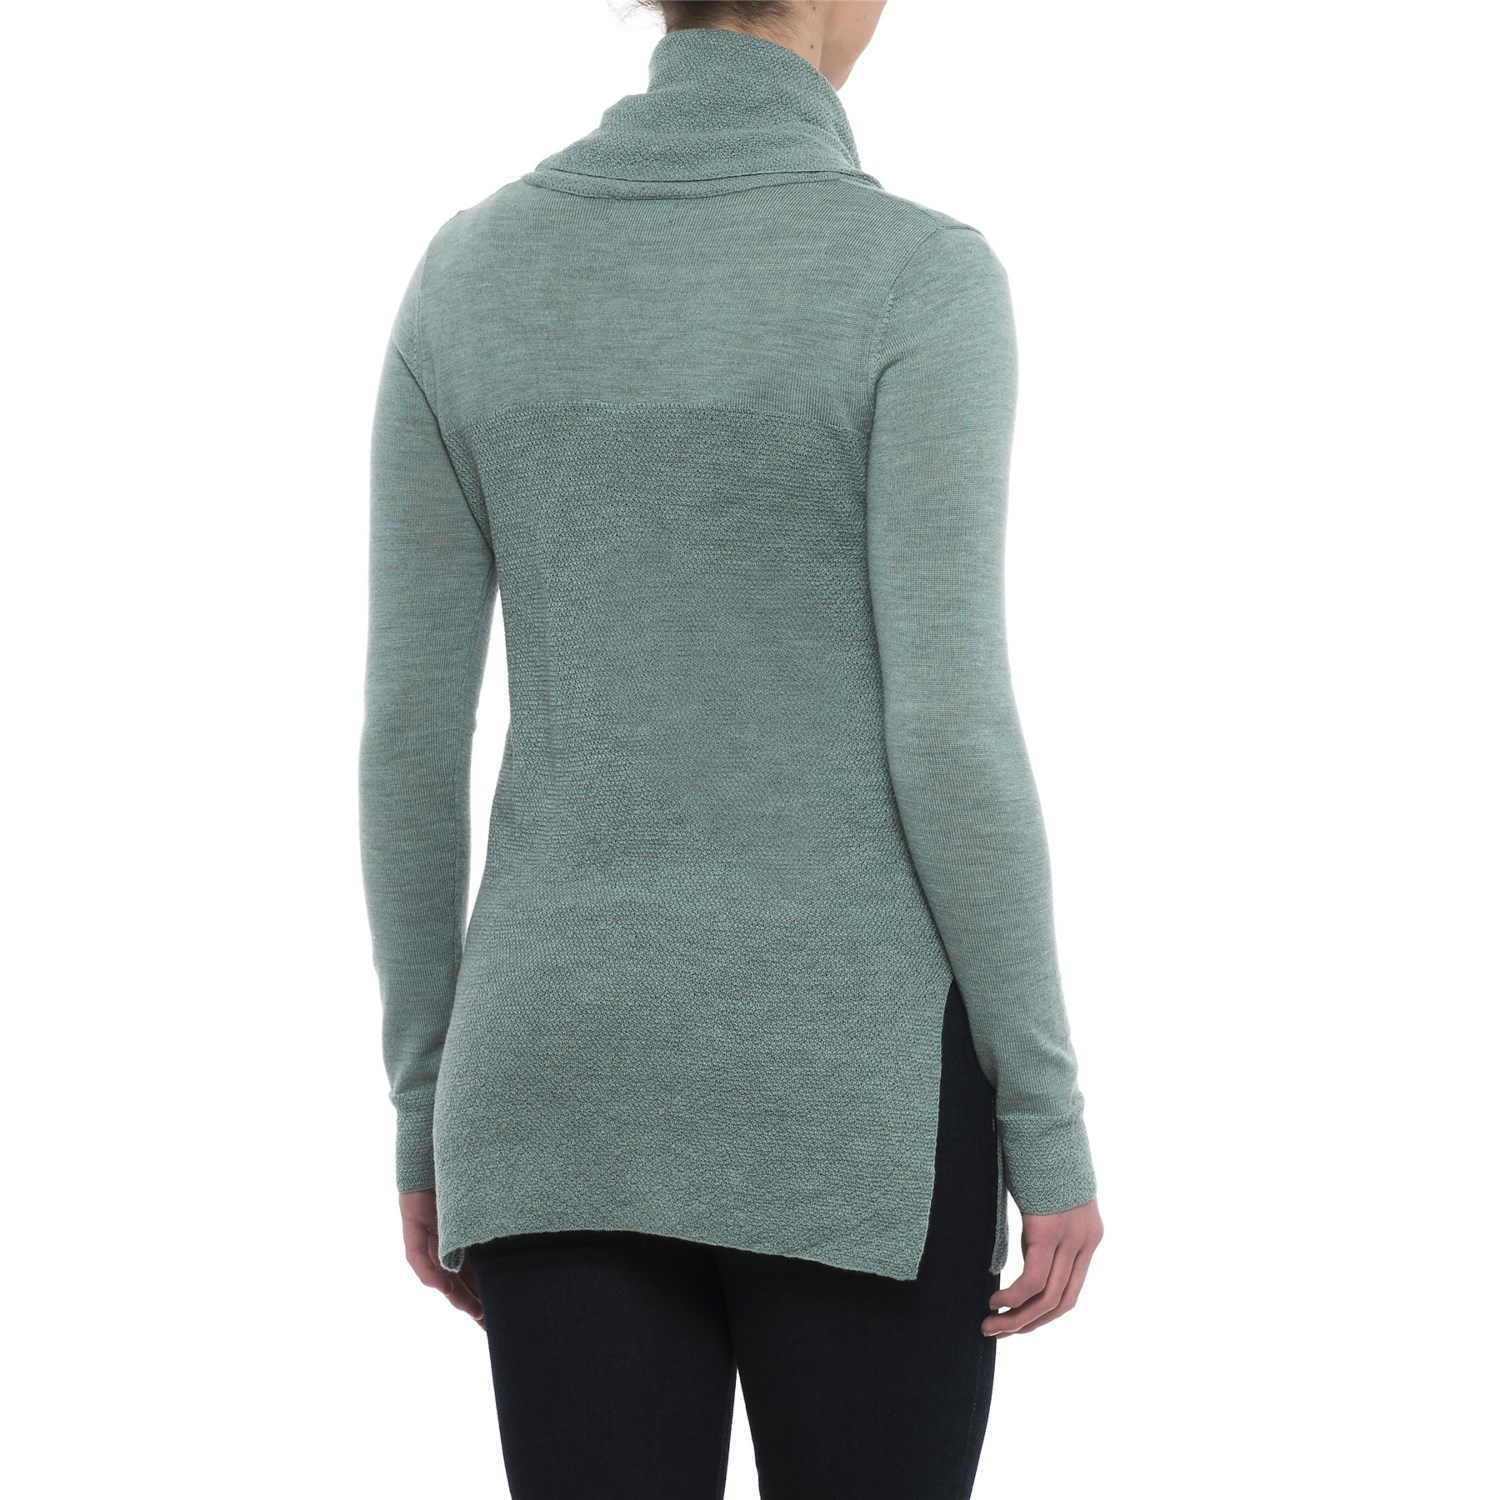 Adrienne Vittadini Merino Cashfeel Sweater (For Women) - Save 48%